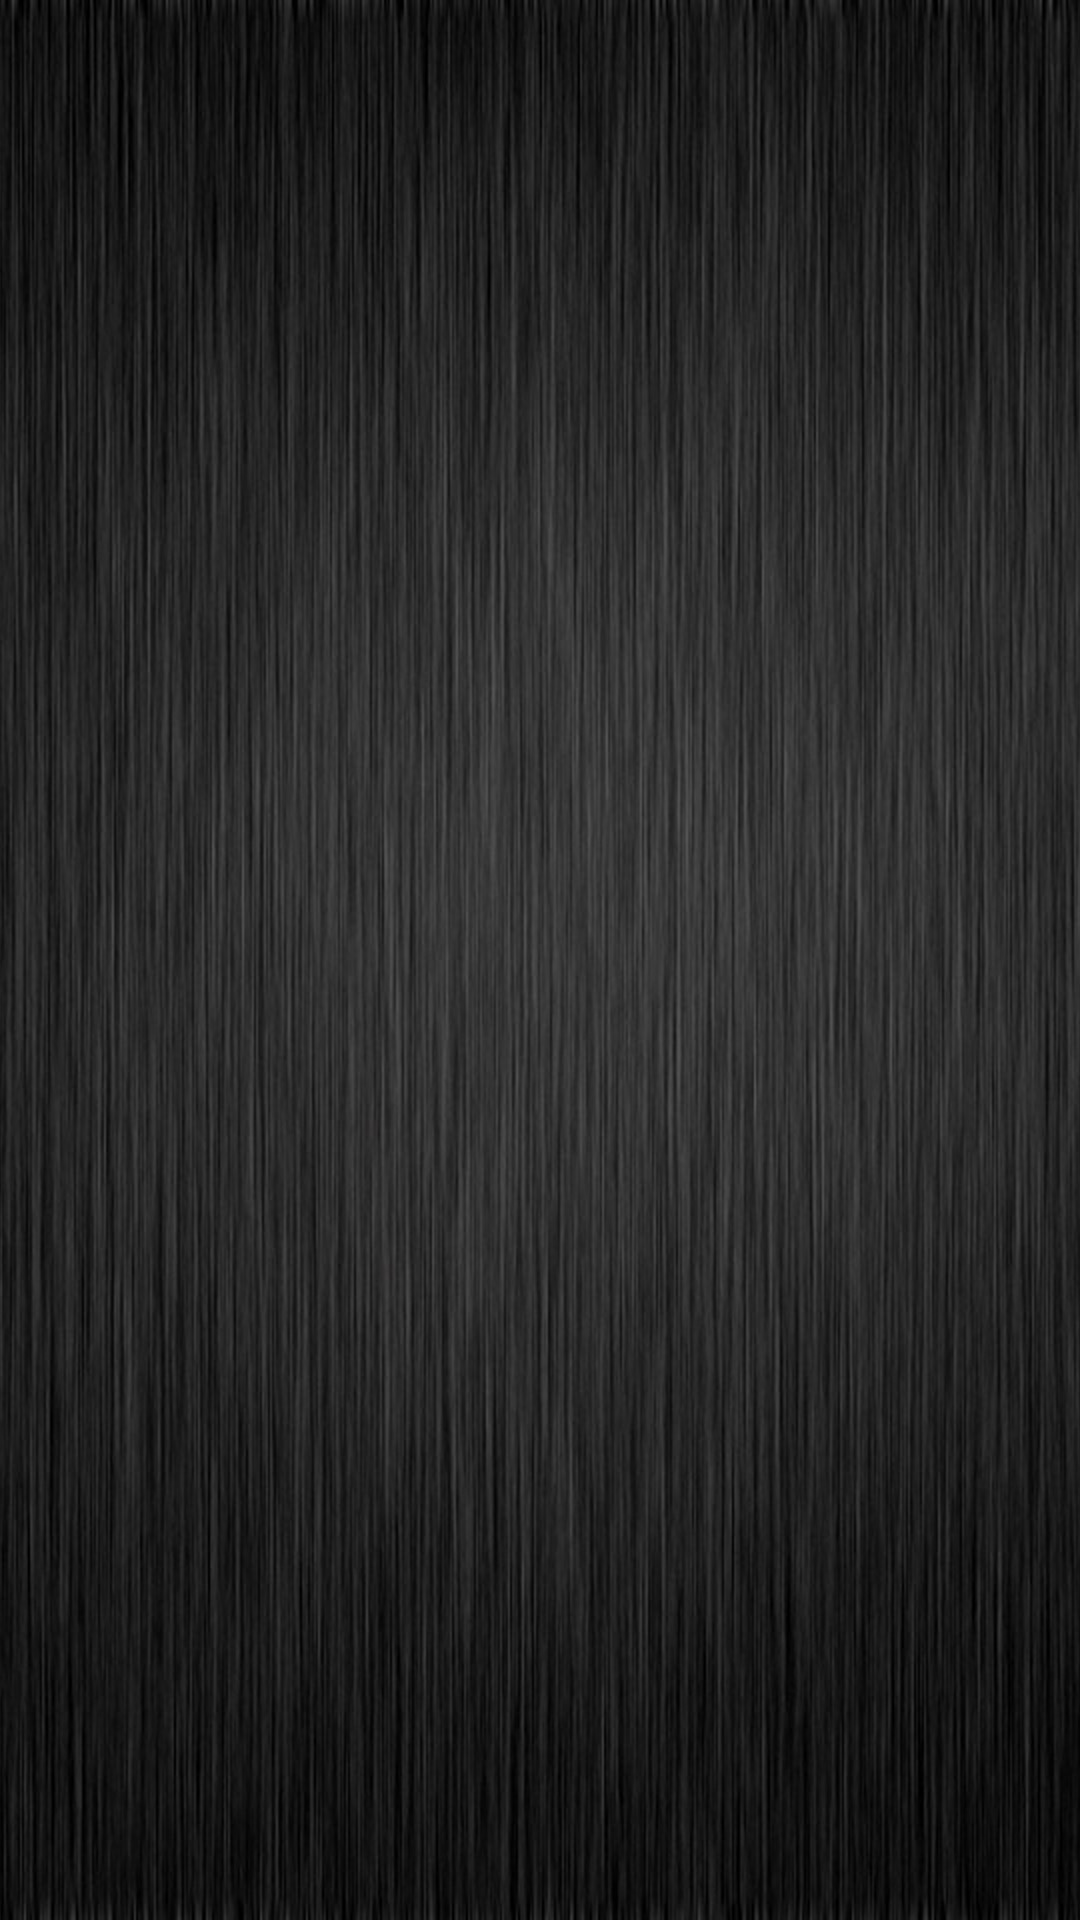 Dark metal HD Wallpaper iPhone 6 plus   wallpapersmobilenet 1080x1920